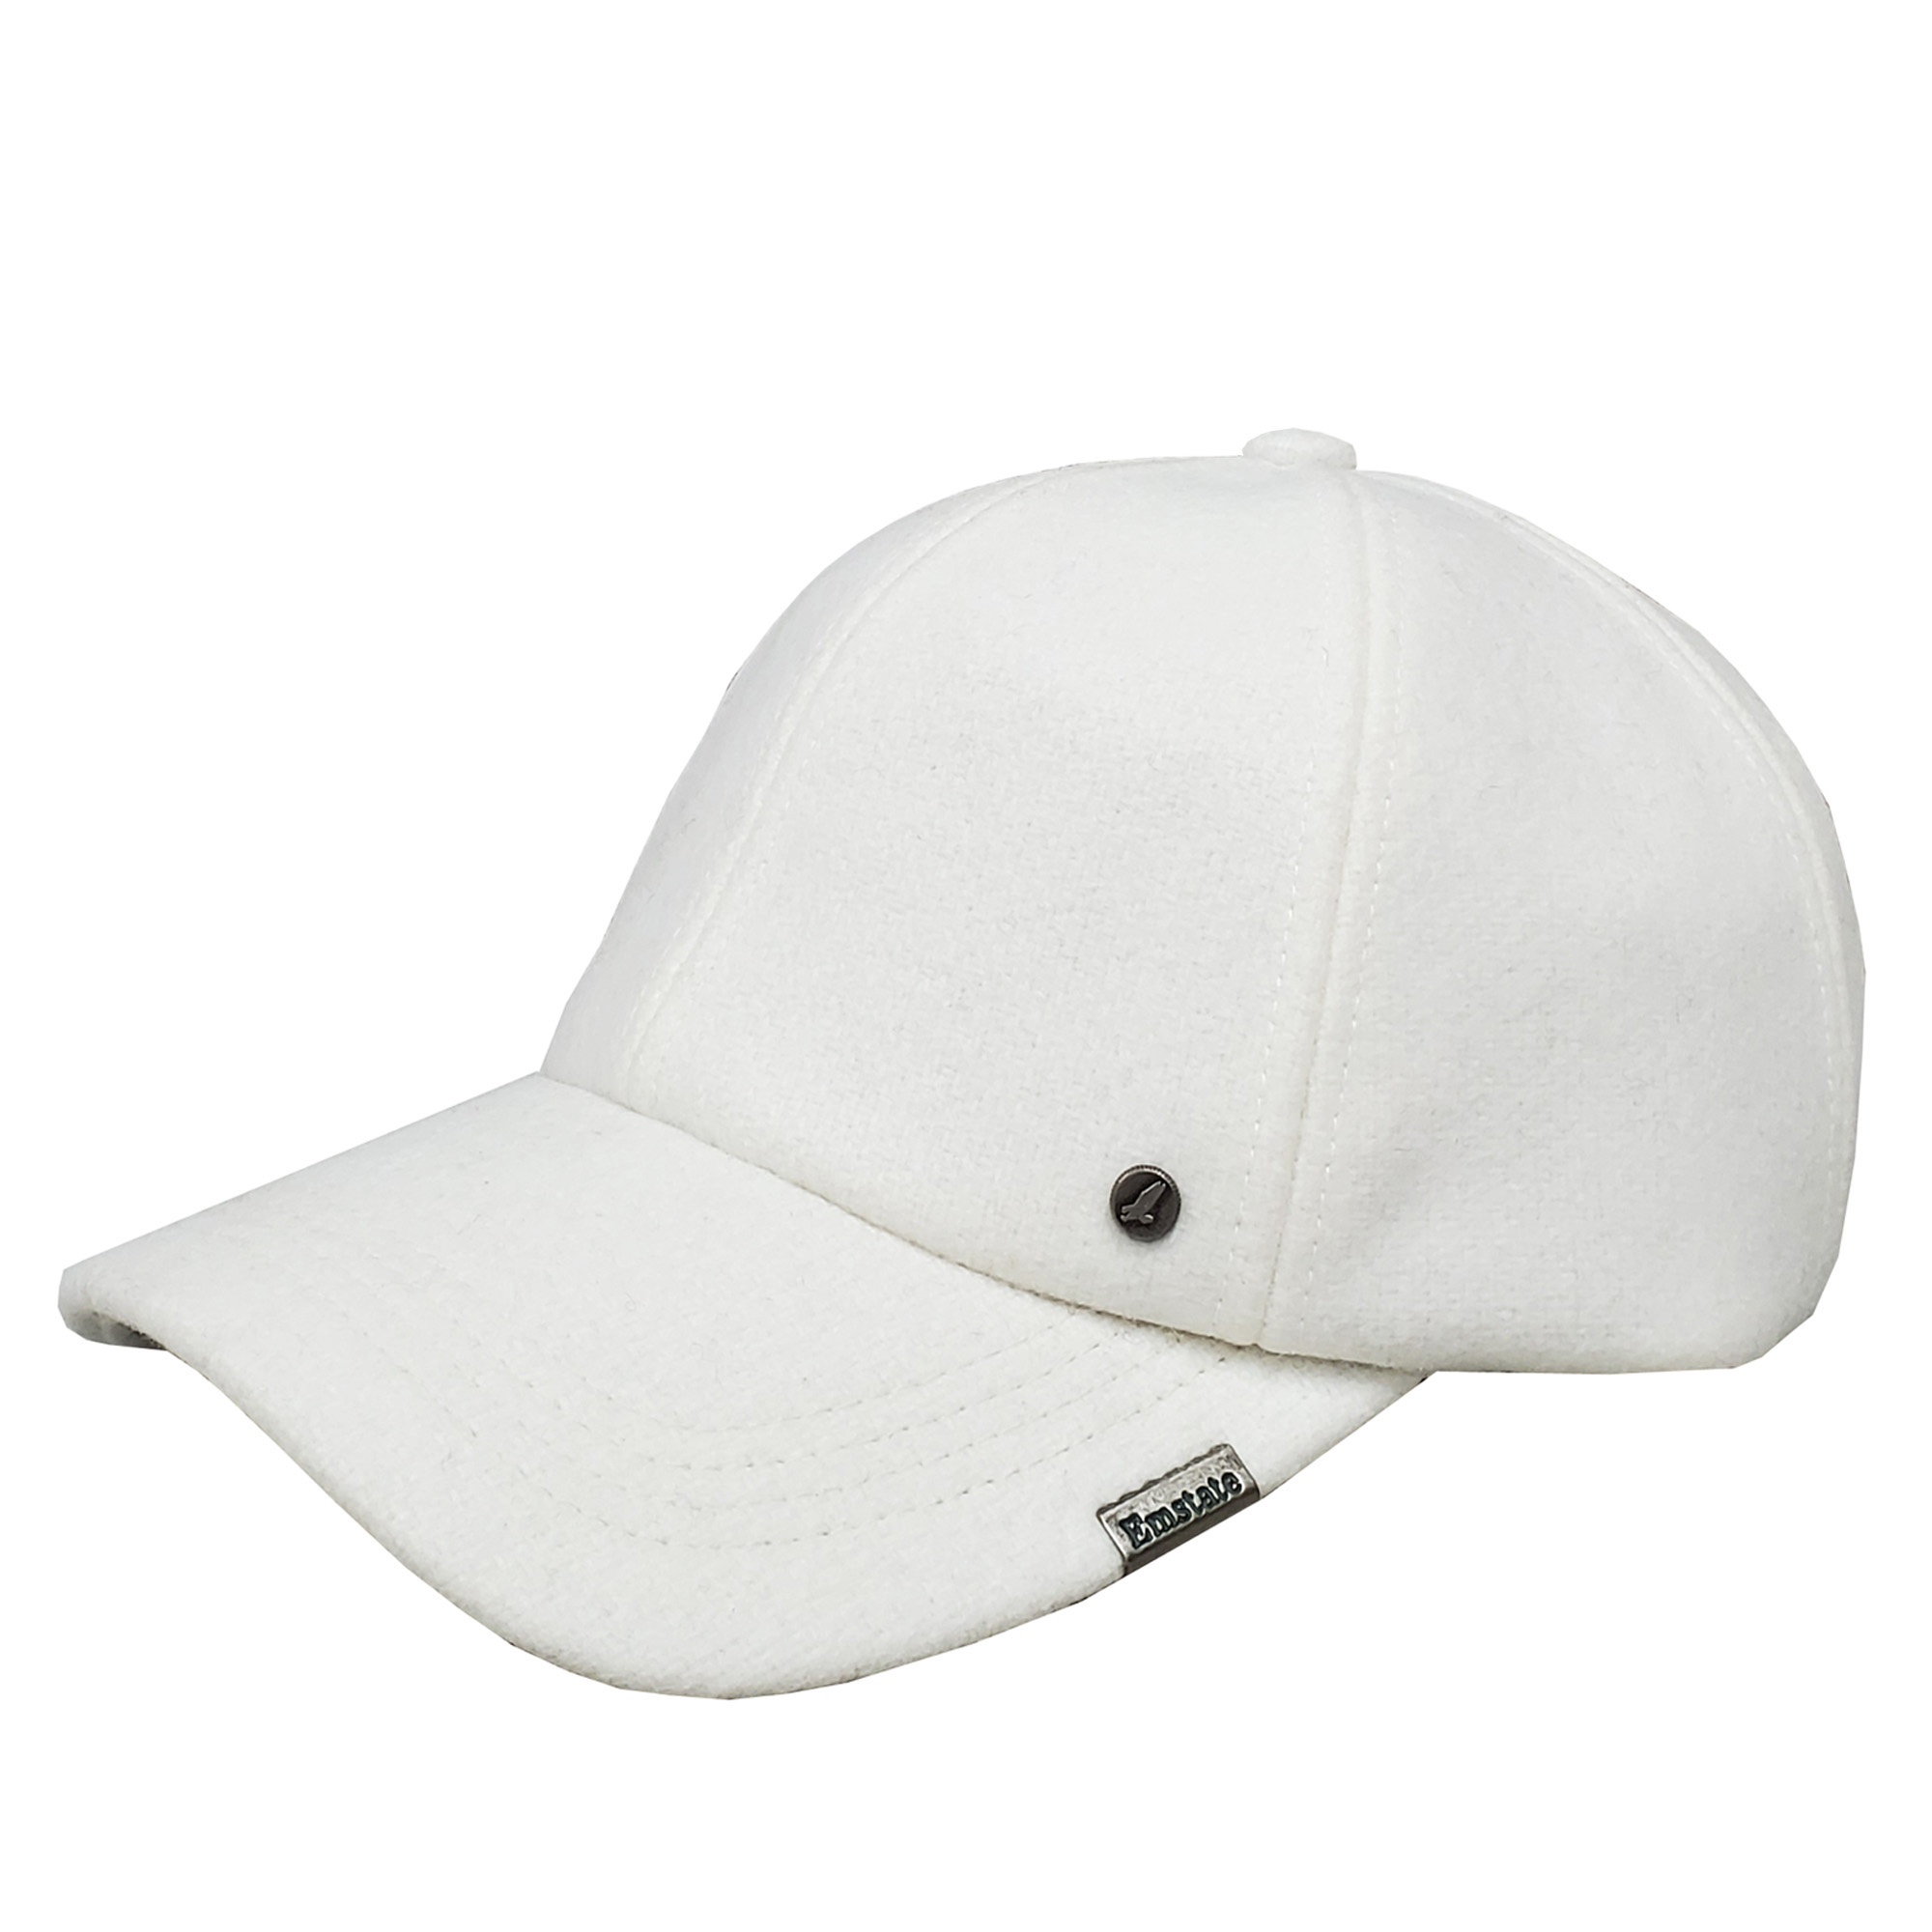 Emstate White Melton Wool Baseball Cap